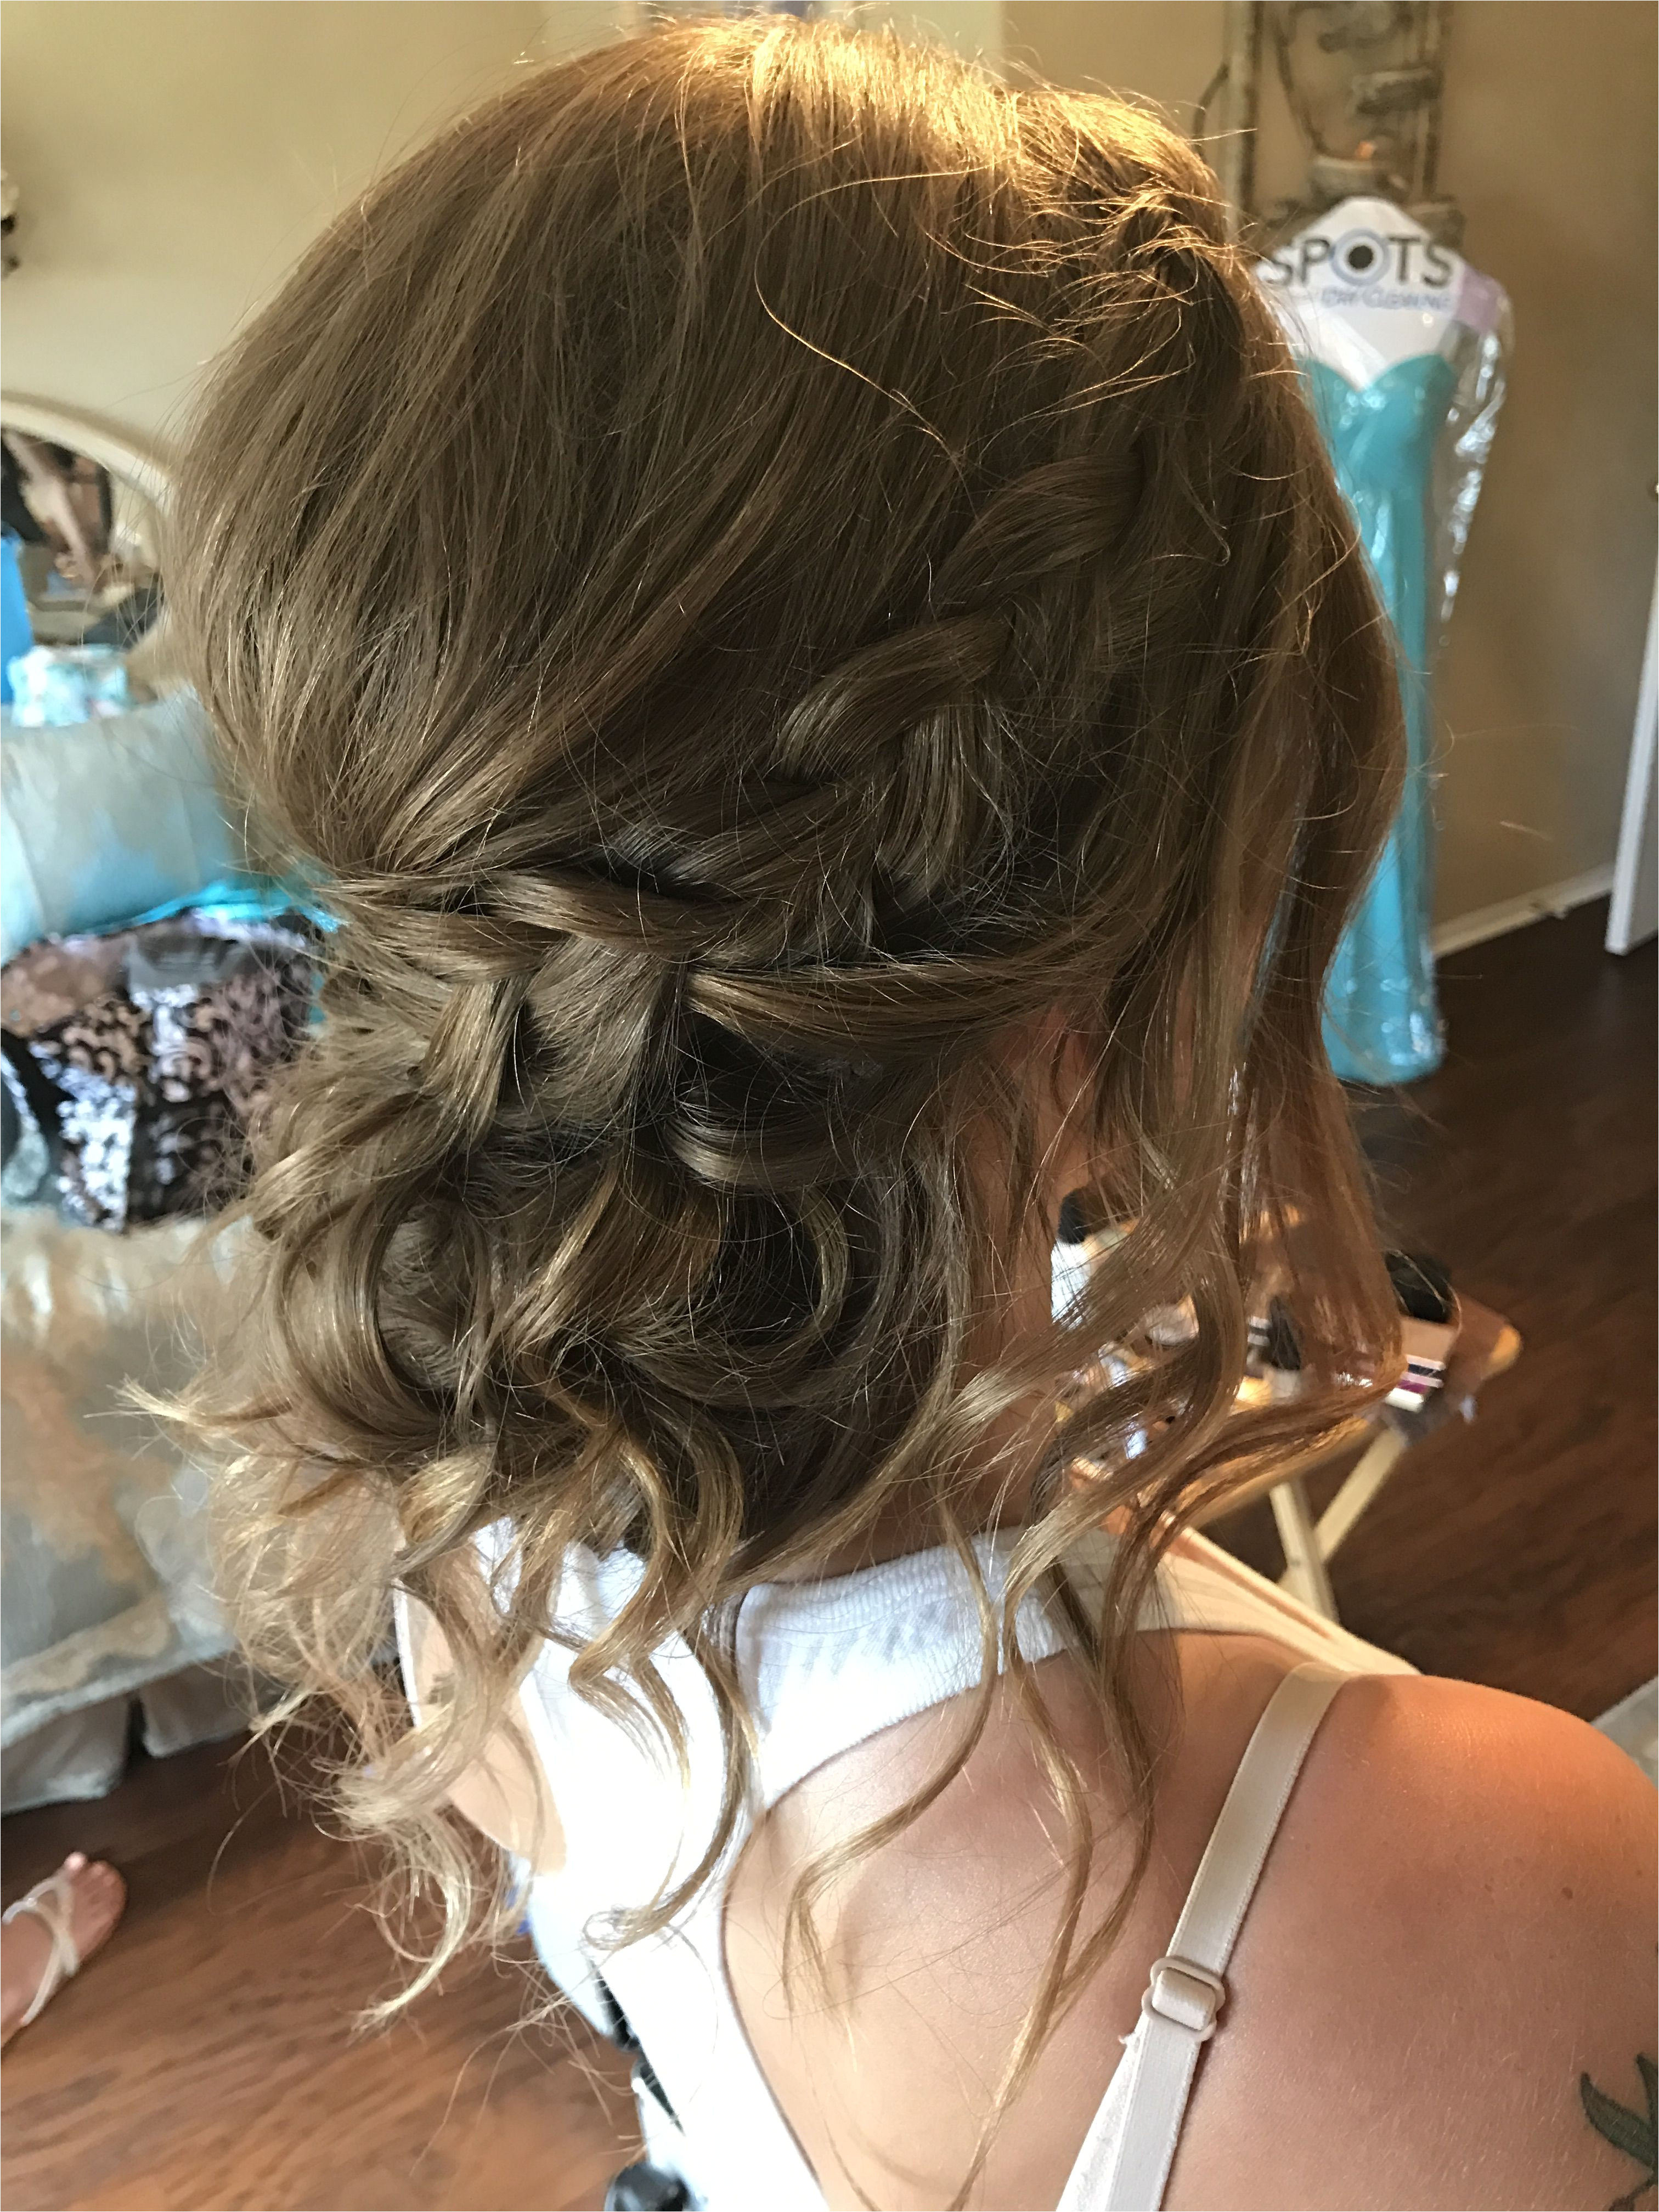 Loose curls updo hairstyle braided hair